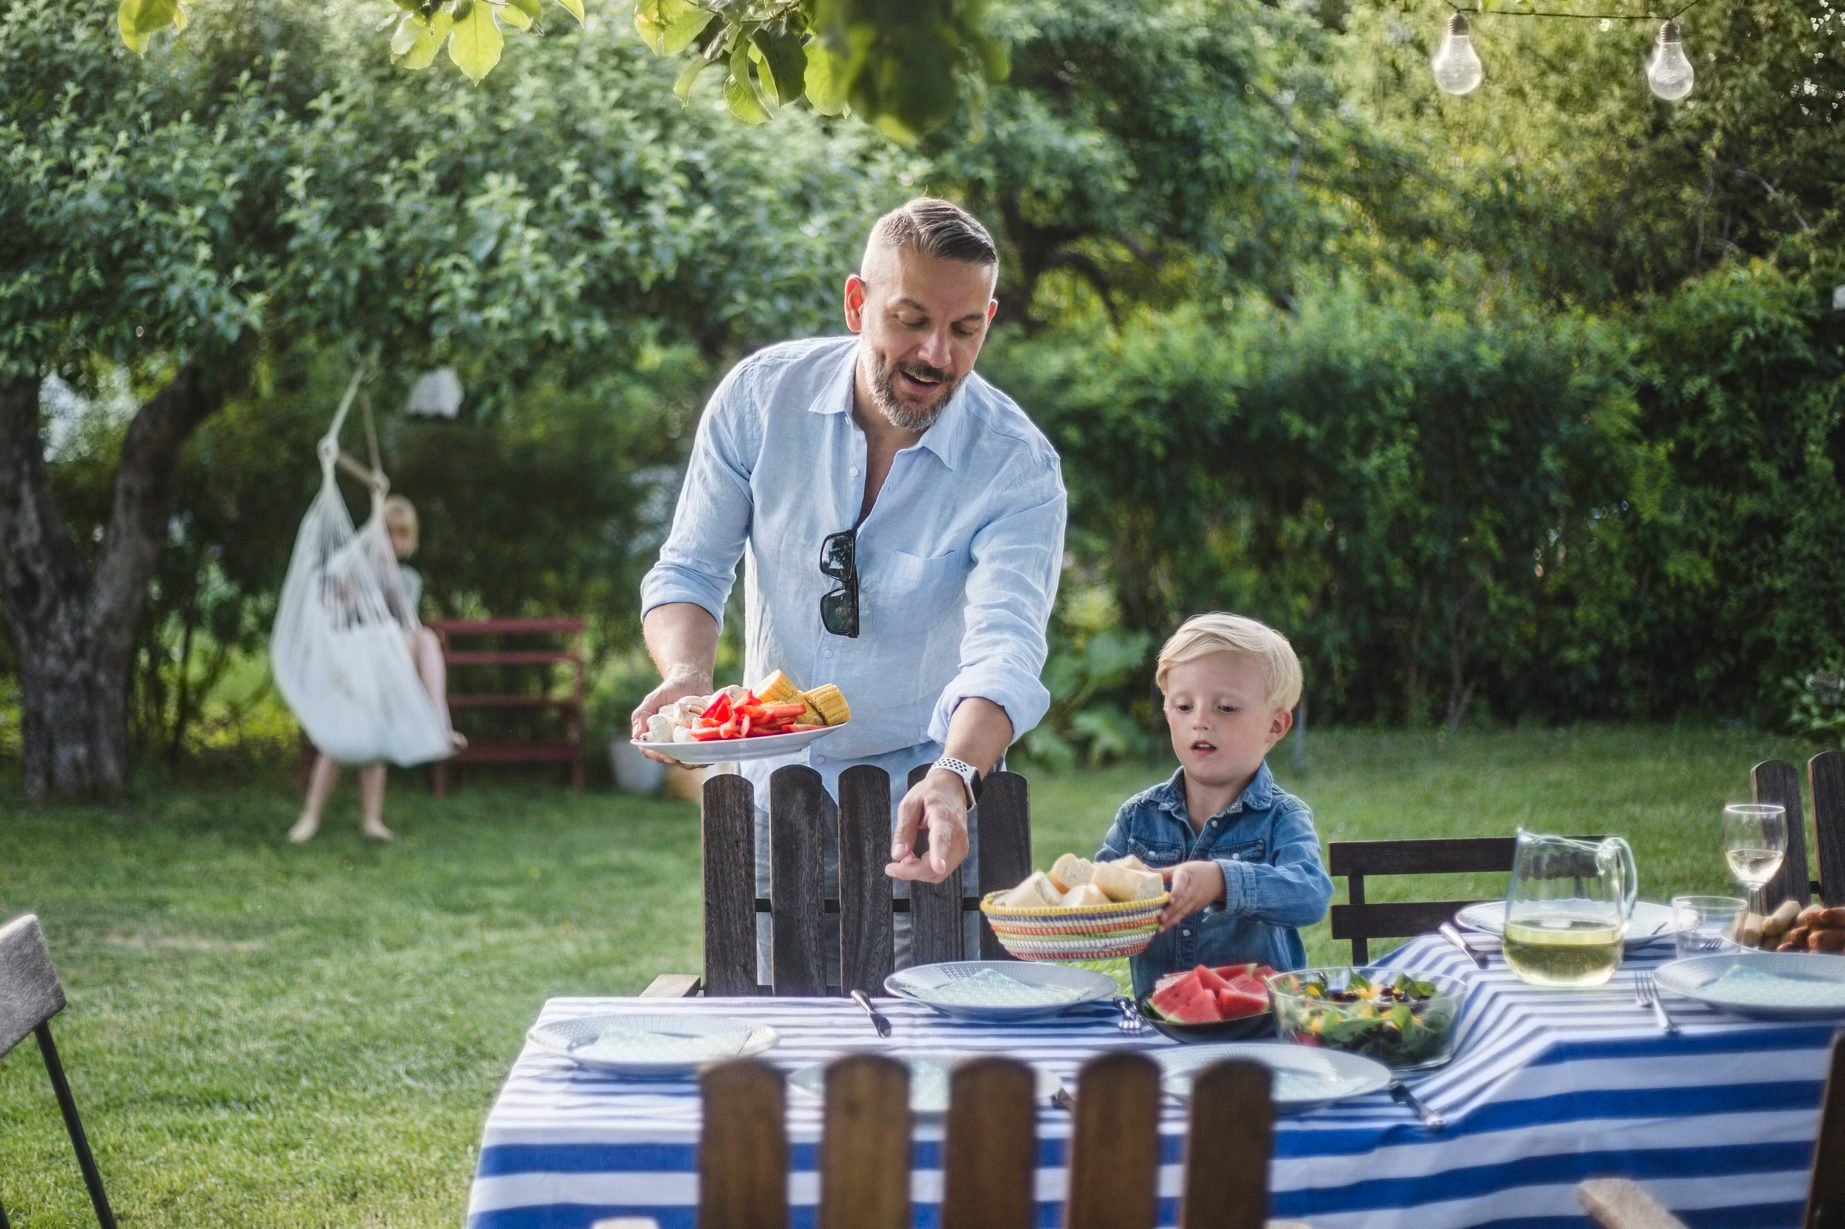 Mature father directing son with food plate while pointing at table in yard